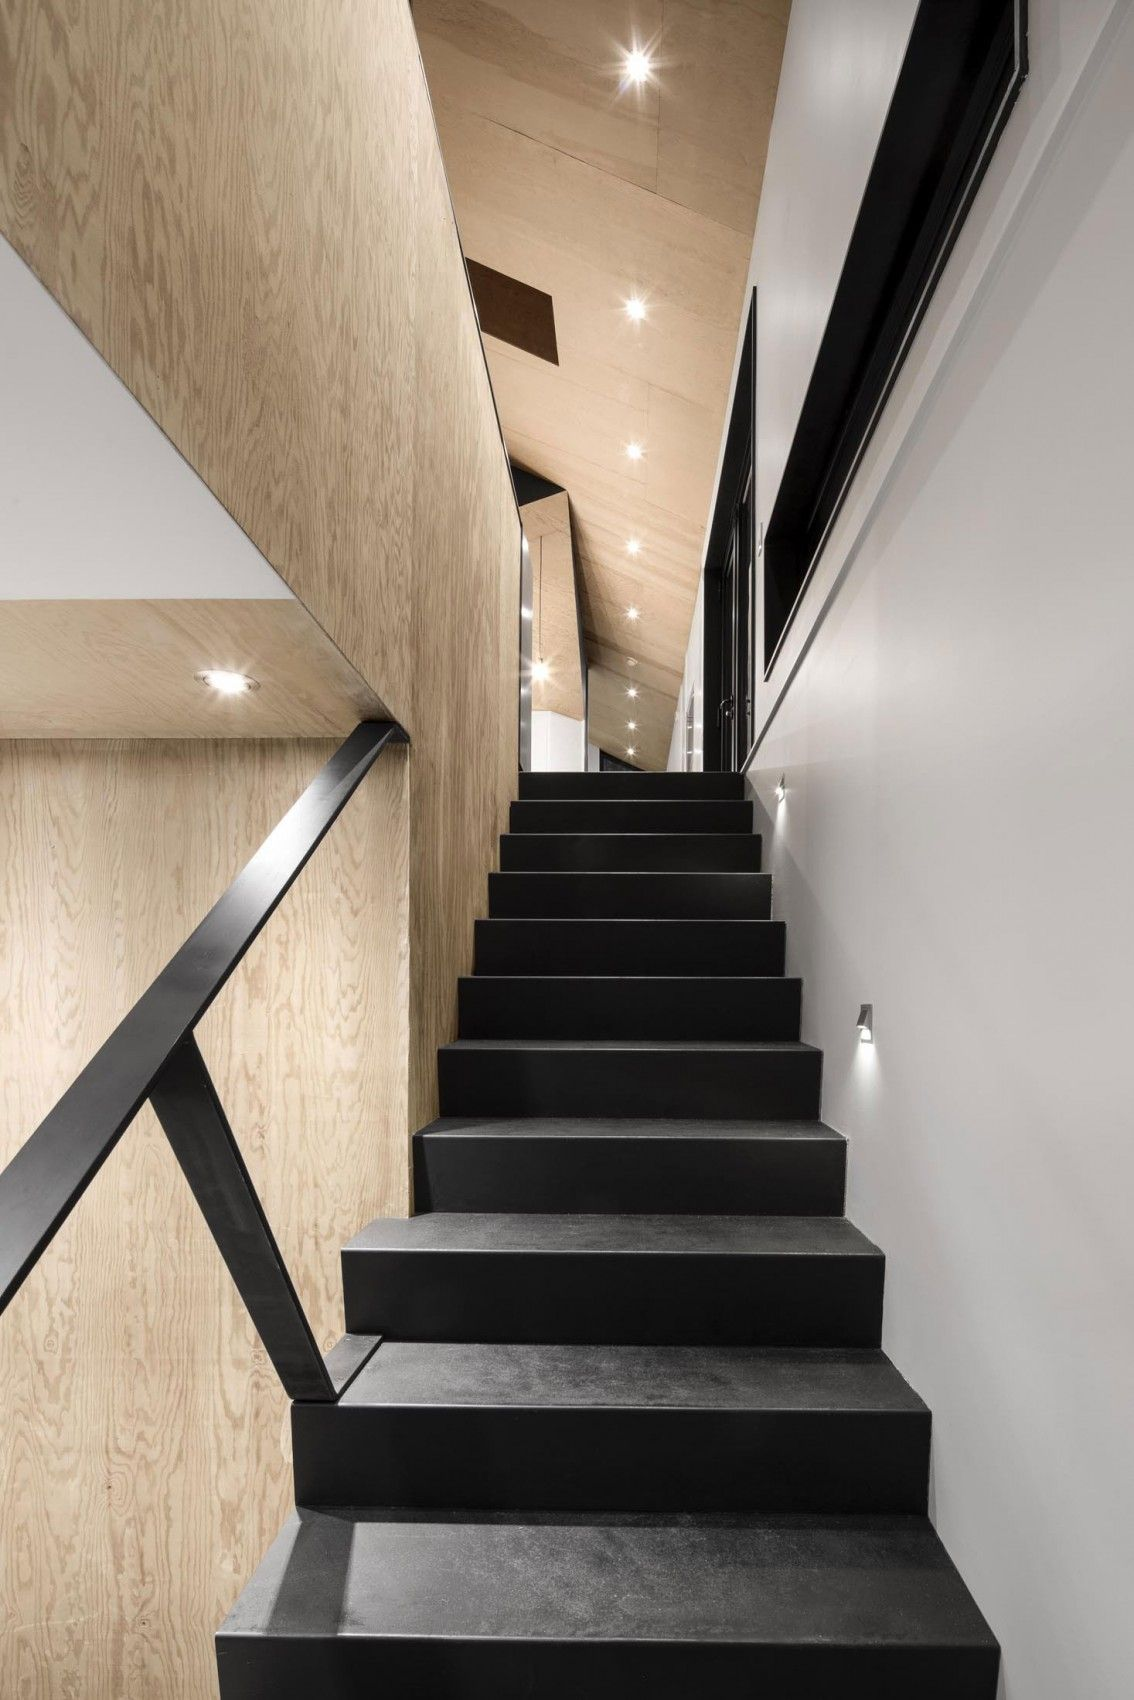 Bolton Residence By Naturehumaine (18) #Ideas #Escalera #Stairs #Microcemento #Revestimiento